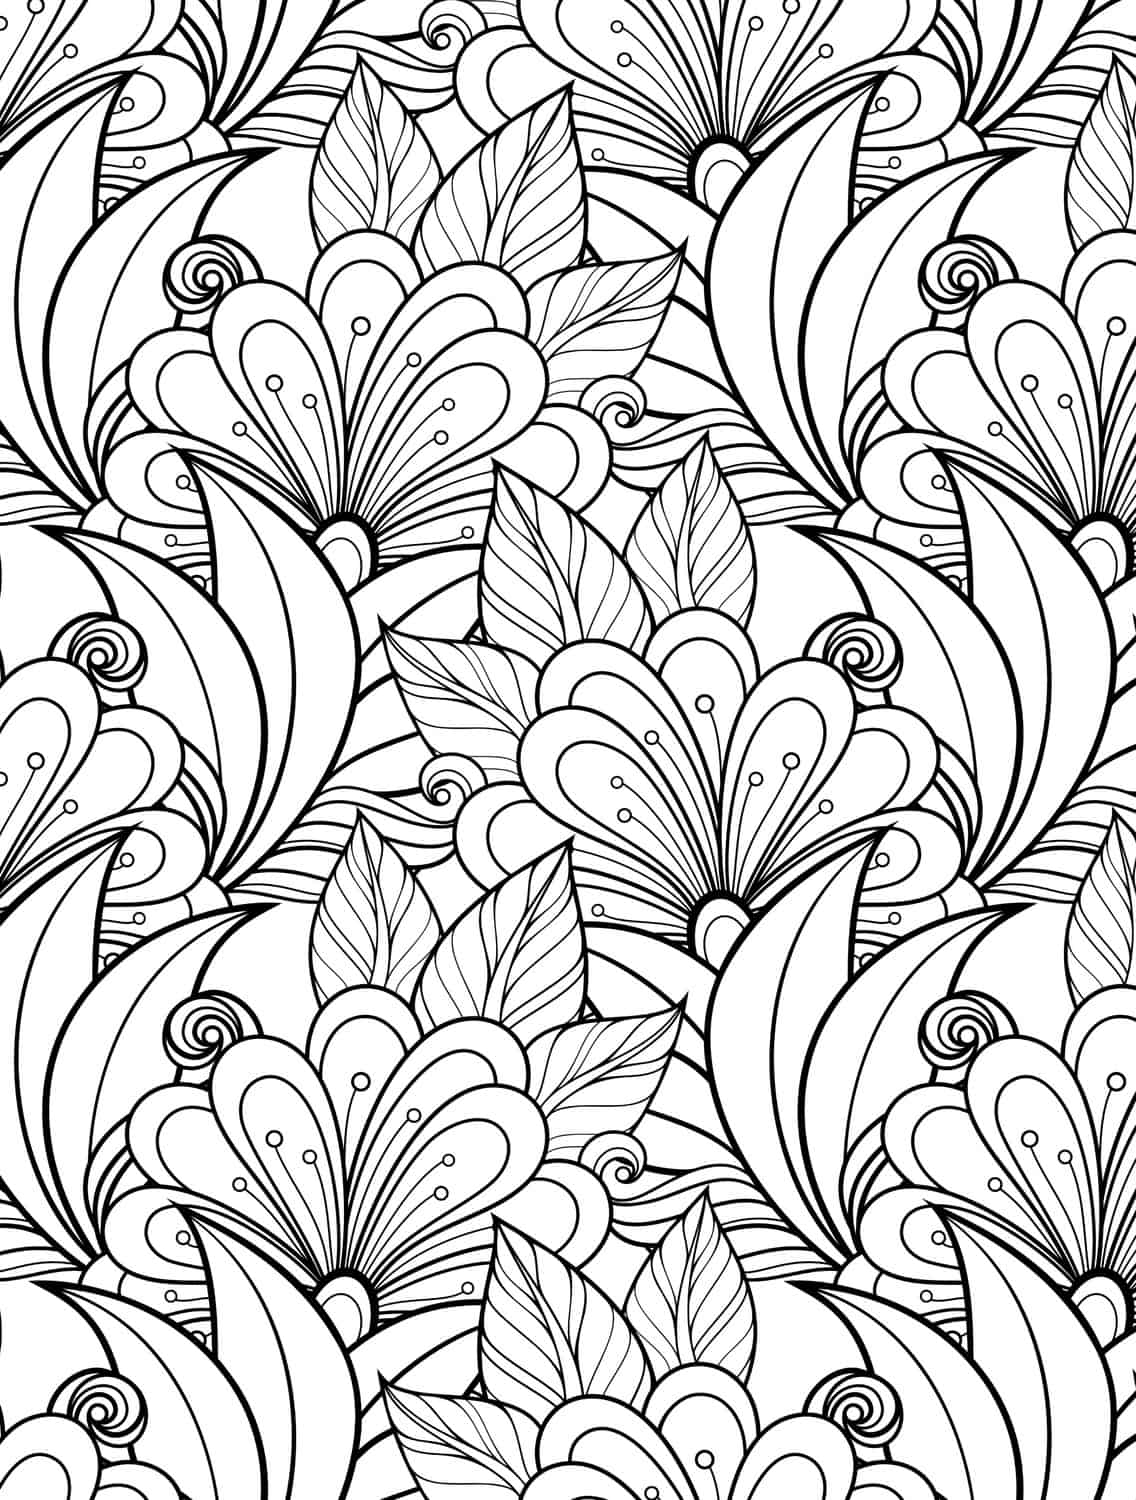 24 More Free Printable Adult Coloring